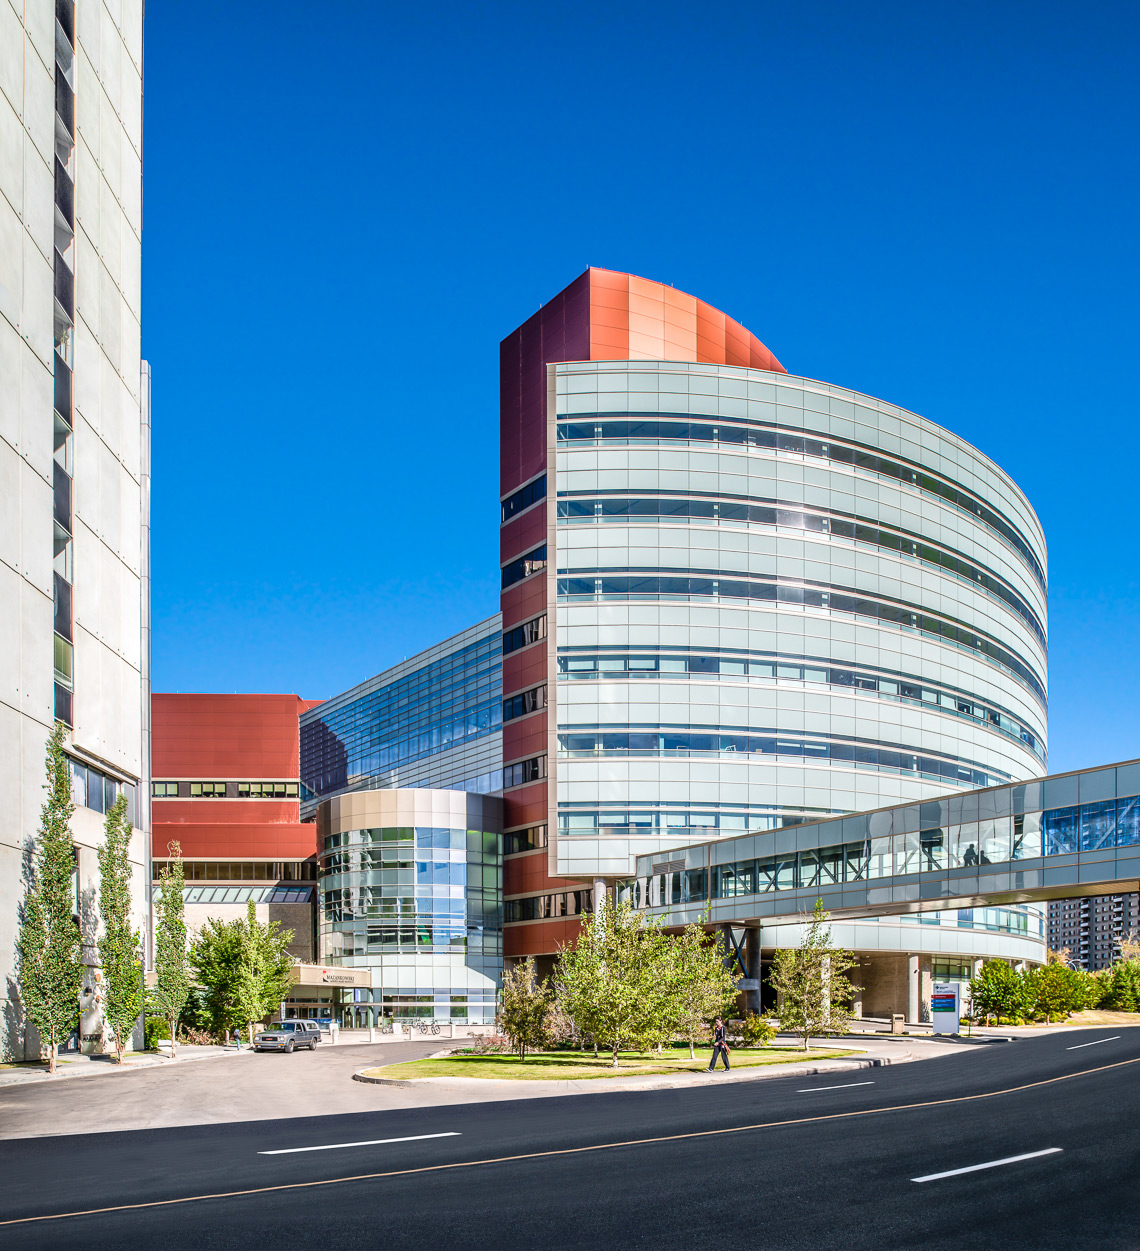 Mazankowski Alberta Heart Institute in Edmonton, Alberta - Christophe Benard Photography, Edmonton Architectural Photographer, Edmonton Architectural Photography